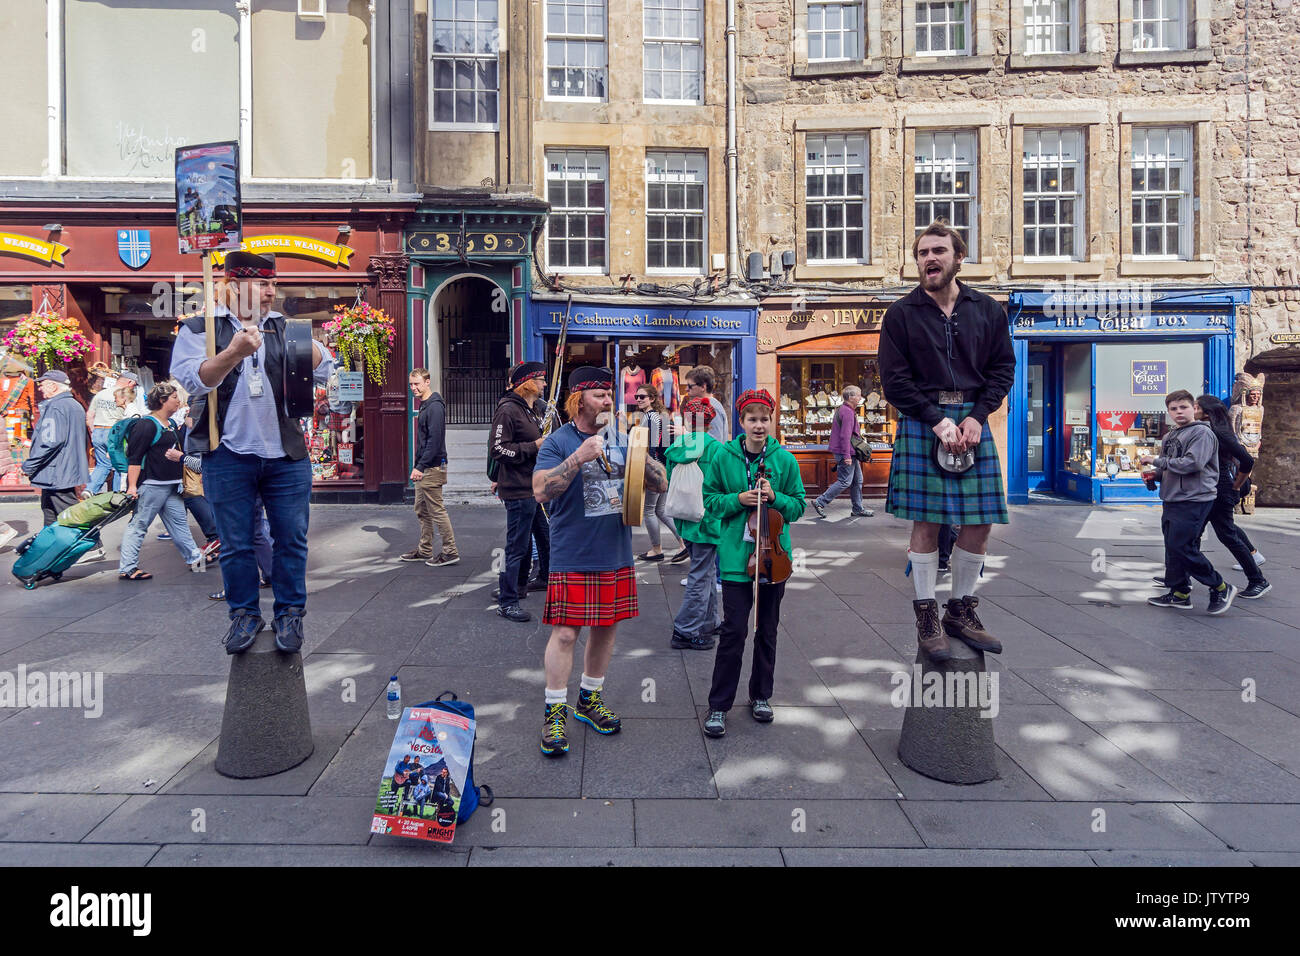 Group promoting the Recovery Version show at Edinburgh Festival Fringe 2017 in the High Street of the Royal Mile Edinburgh Scotland UK - Stock Image